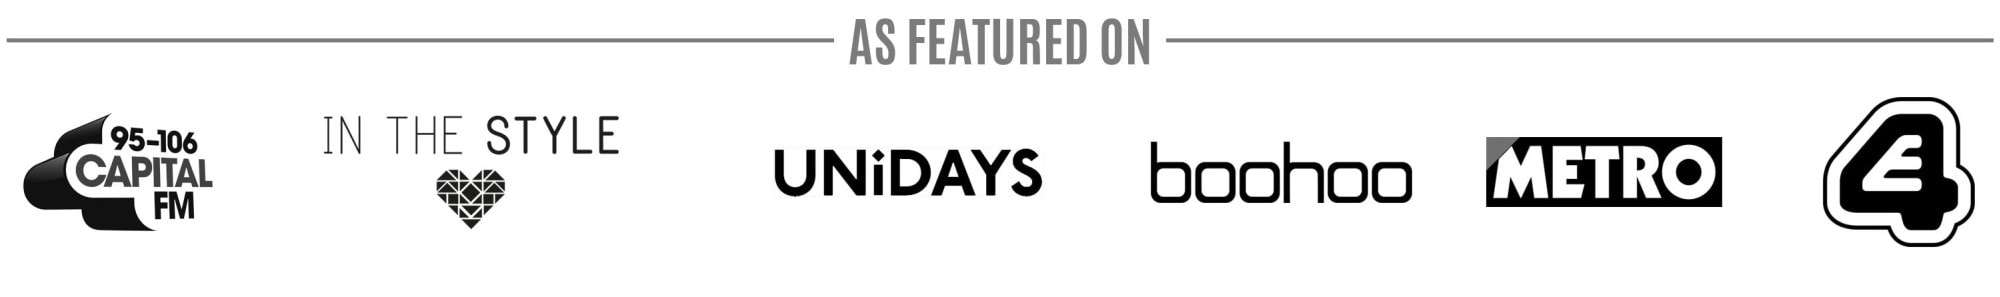 as featured on footer partners: metro, capital radio, unidays, boohoo, in the style, channel 4